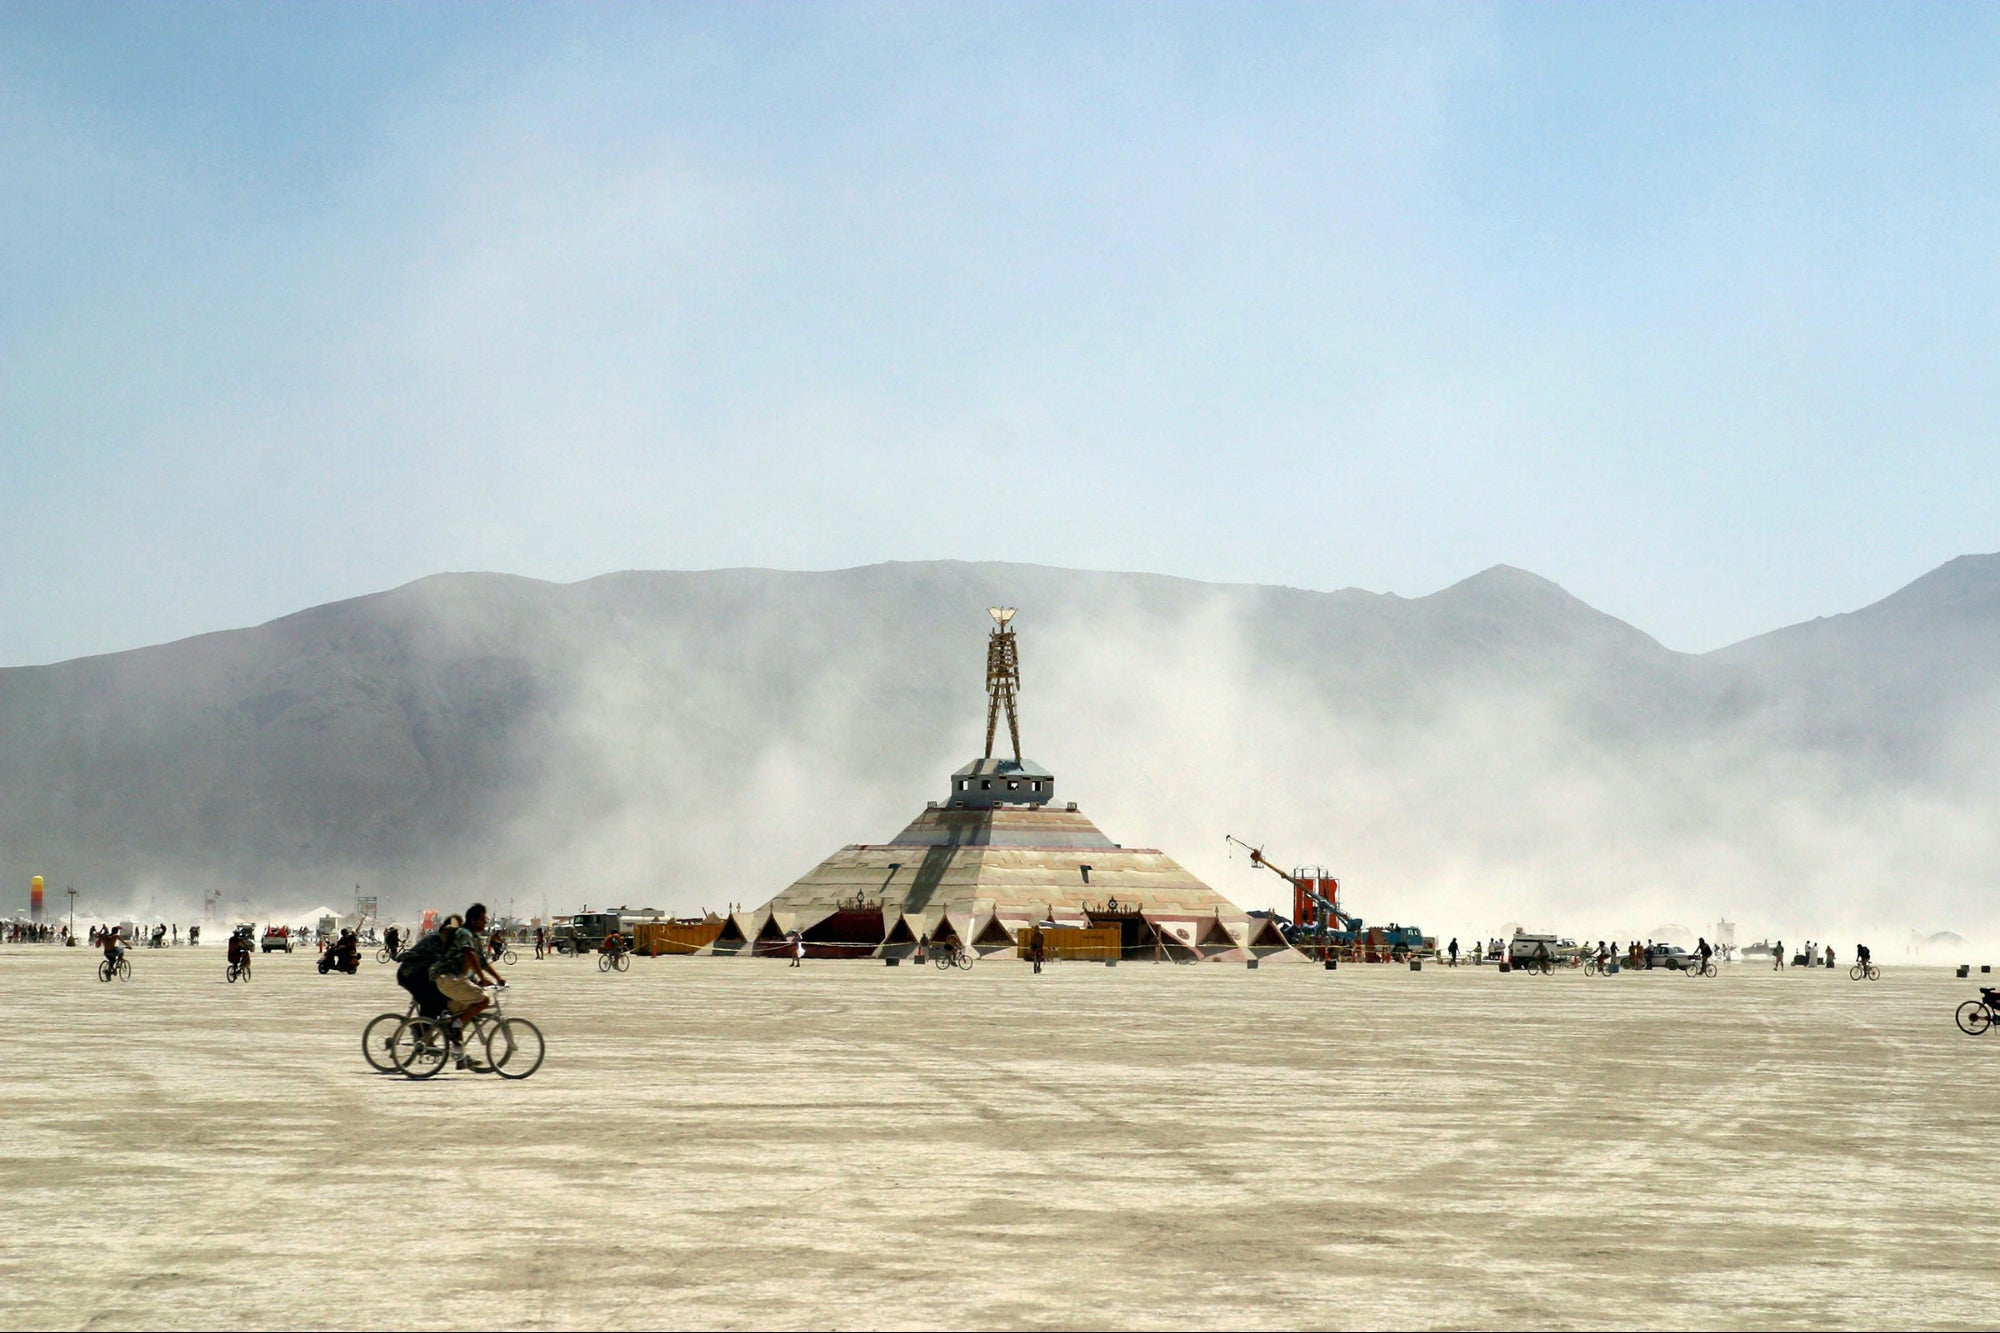 Leadership Lessons From Ted Talks, the Oscars, and Burning Man